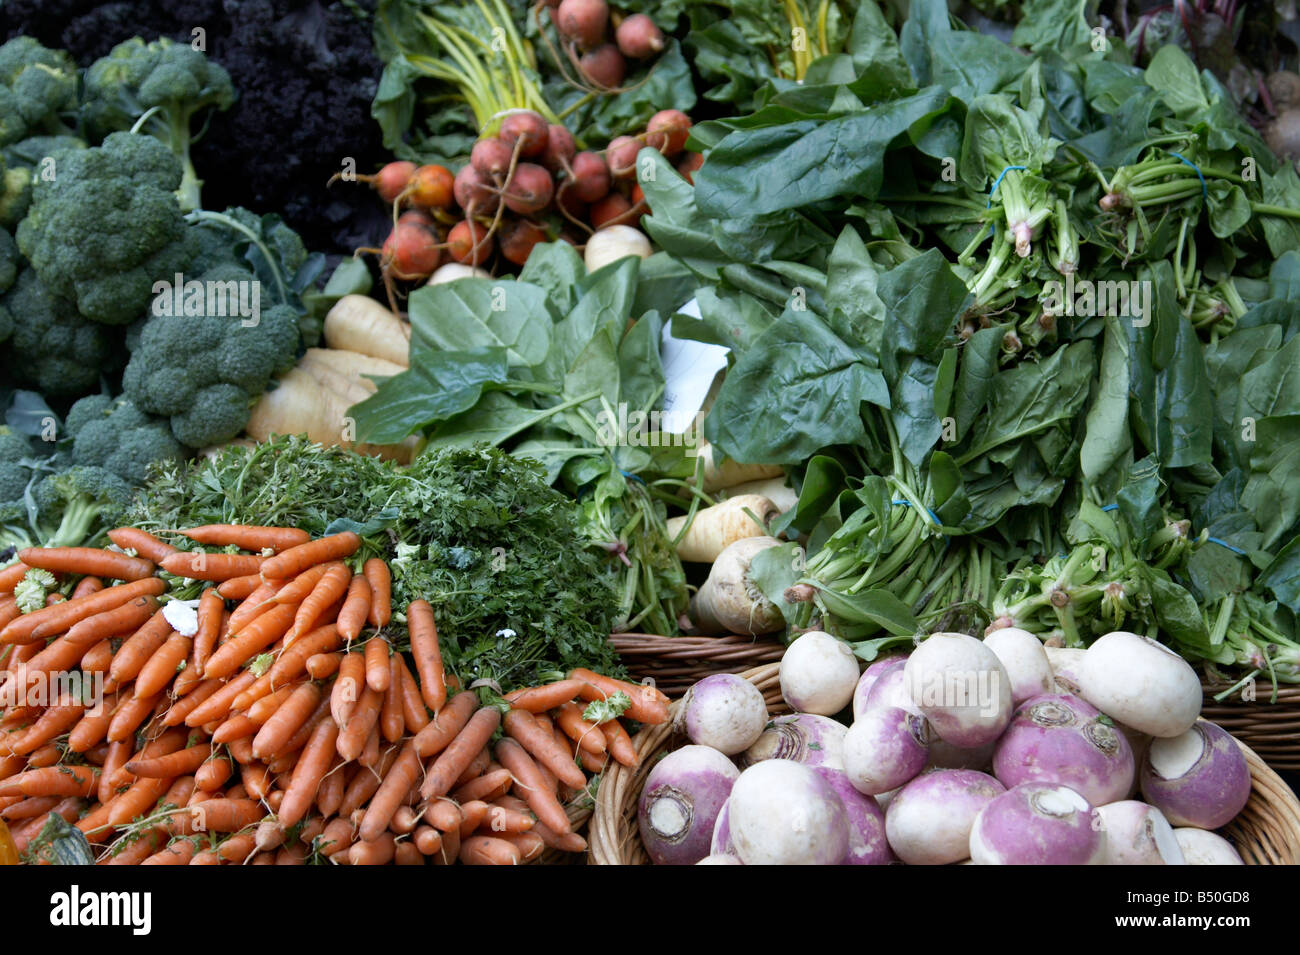 Vegetables on display at Borough Market, London - Stock Image